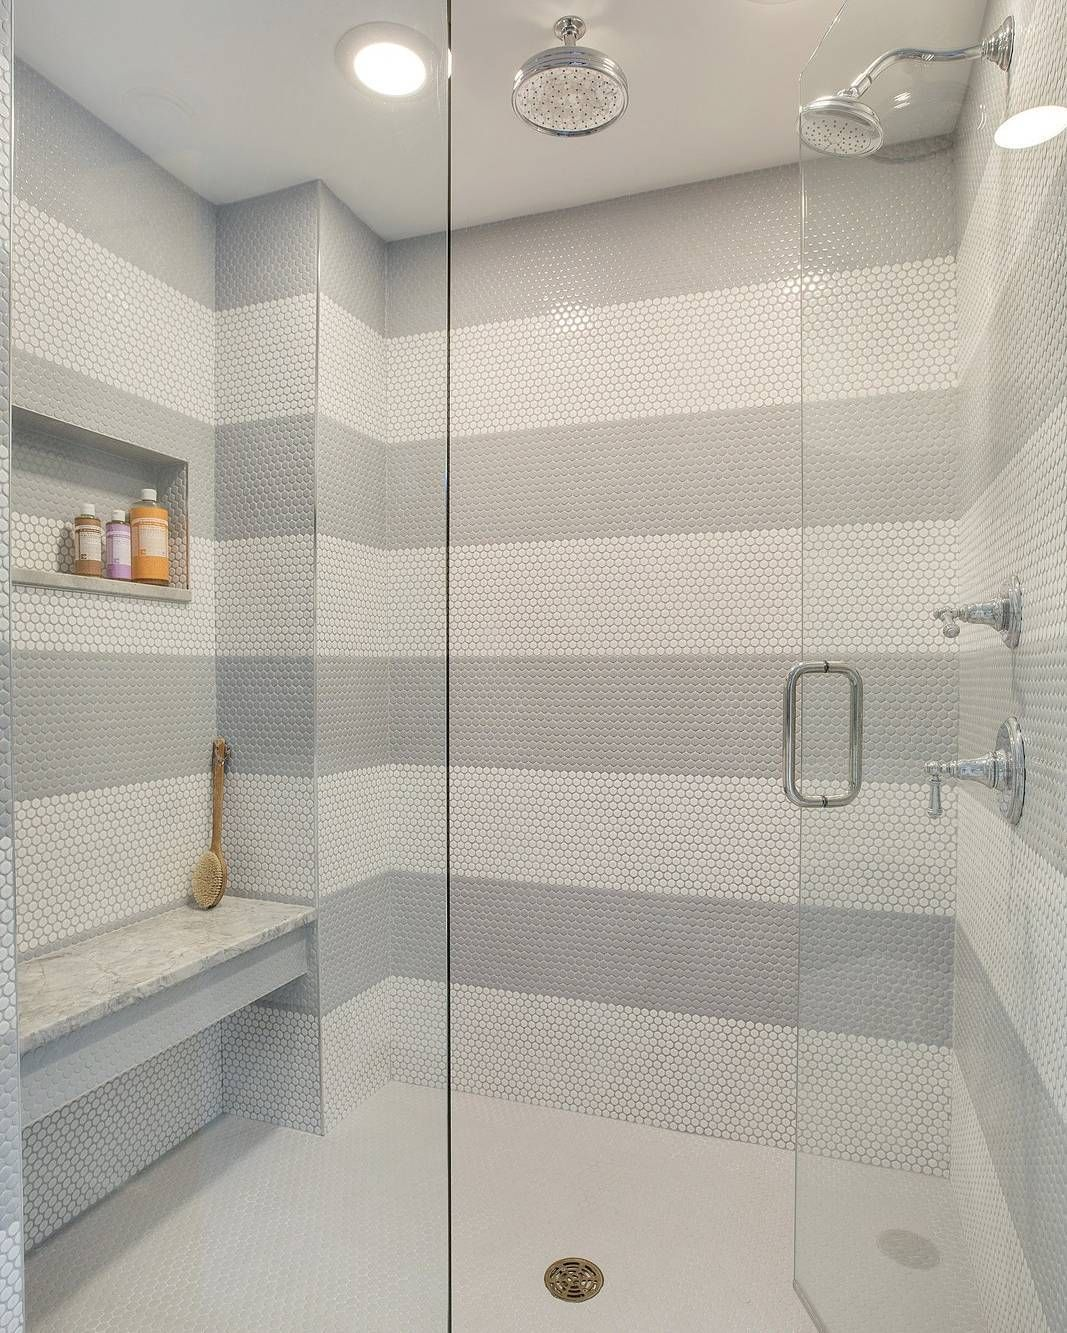 Affordable And Beautiful Shower Tile Option White And Grey Penny - Cheap penny round tile